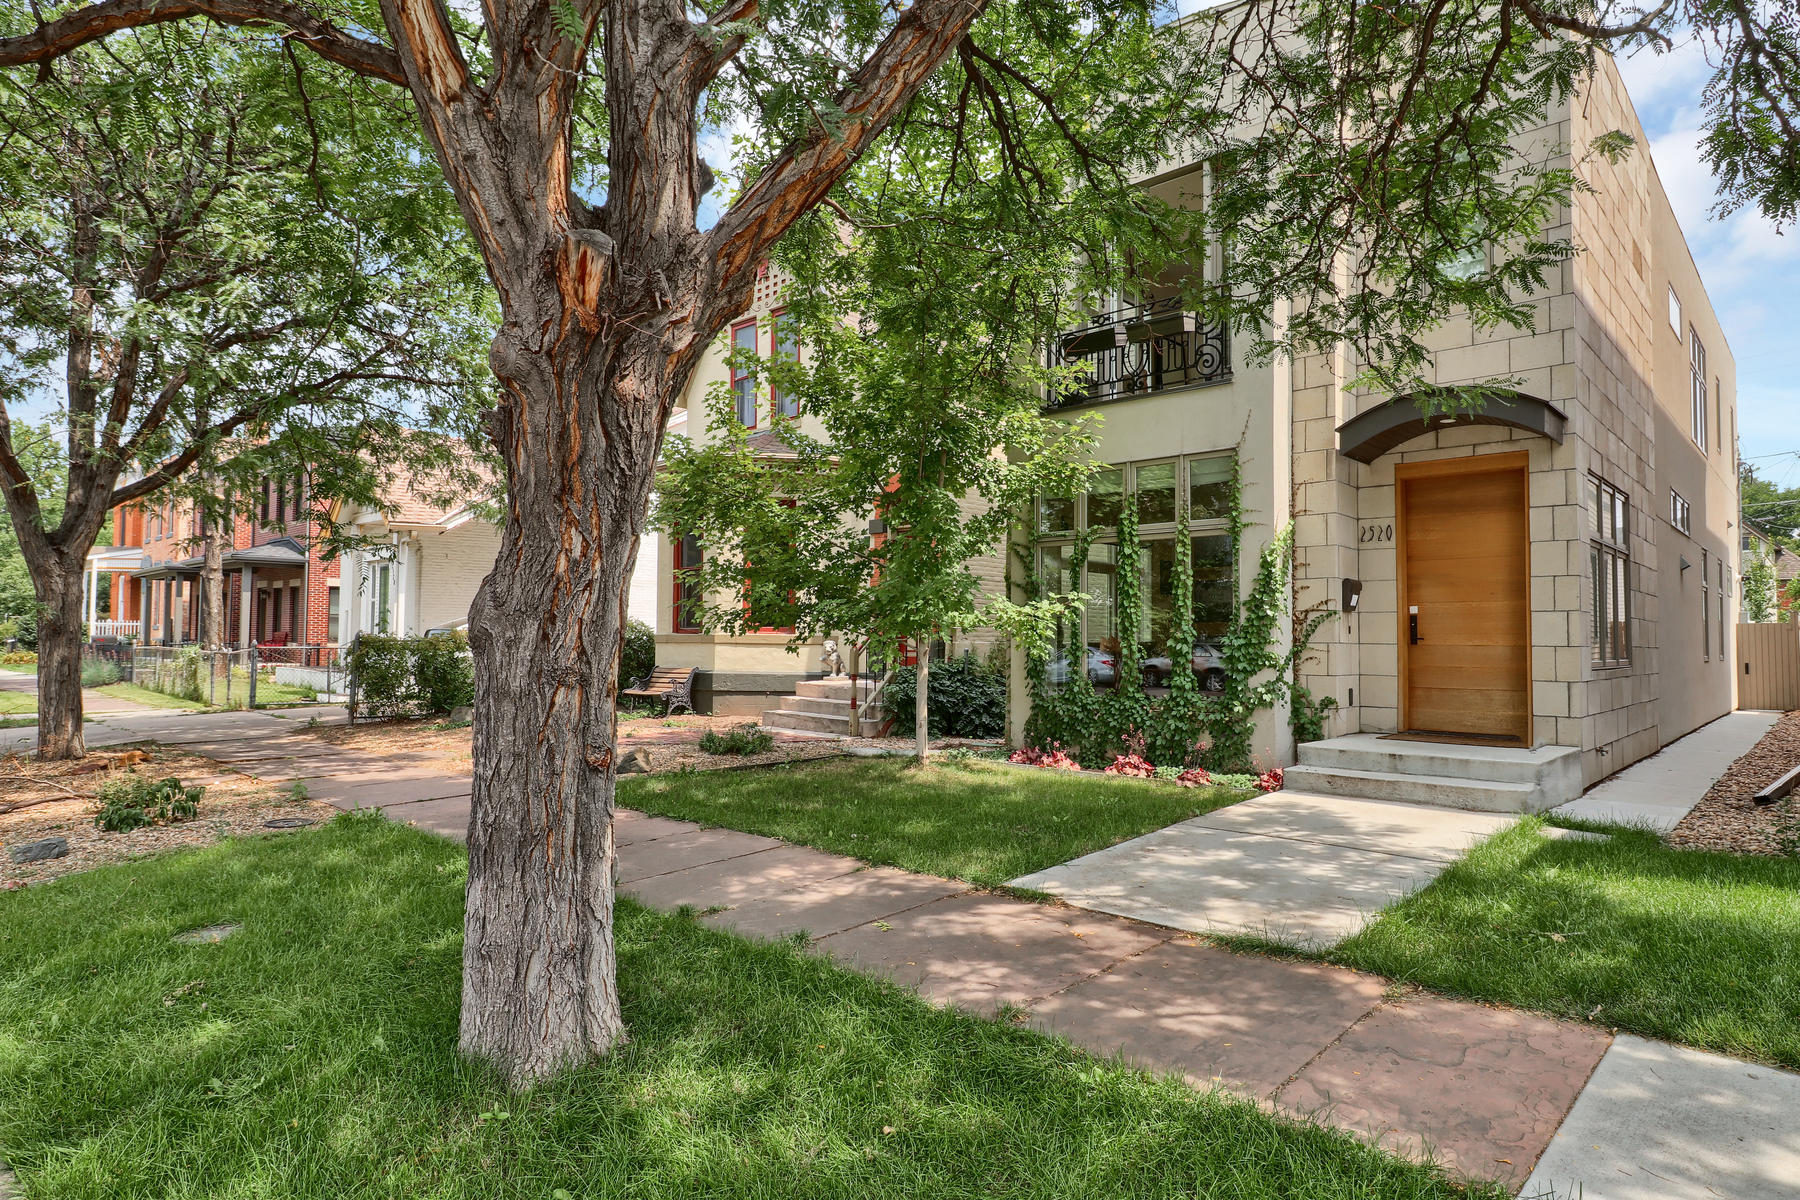 Single Family Home for Rent at Sophistication Meets Urban Hip 2520 Stout St Denver, Colorado 80205 United States